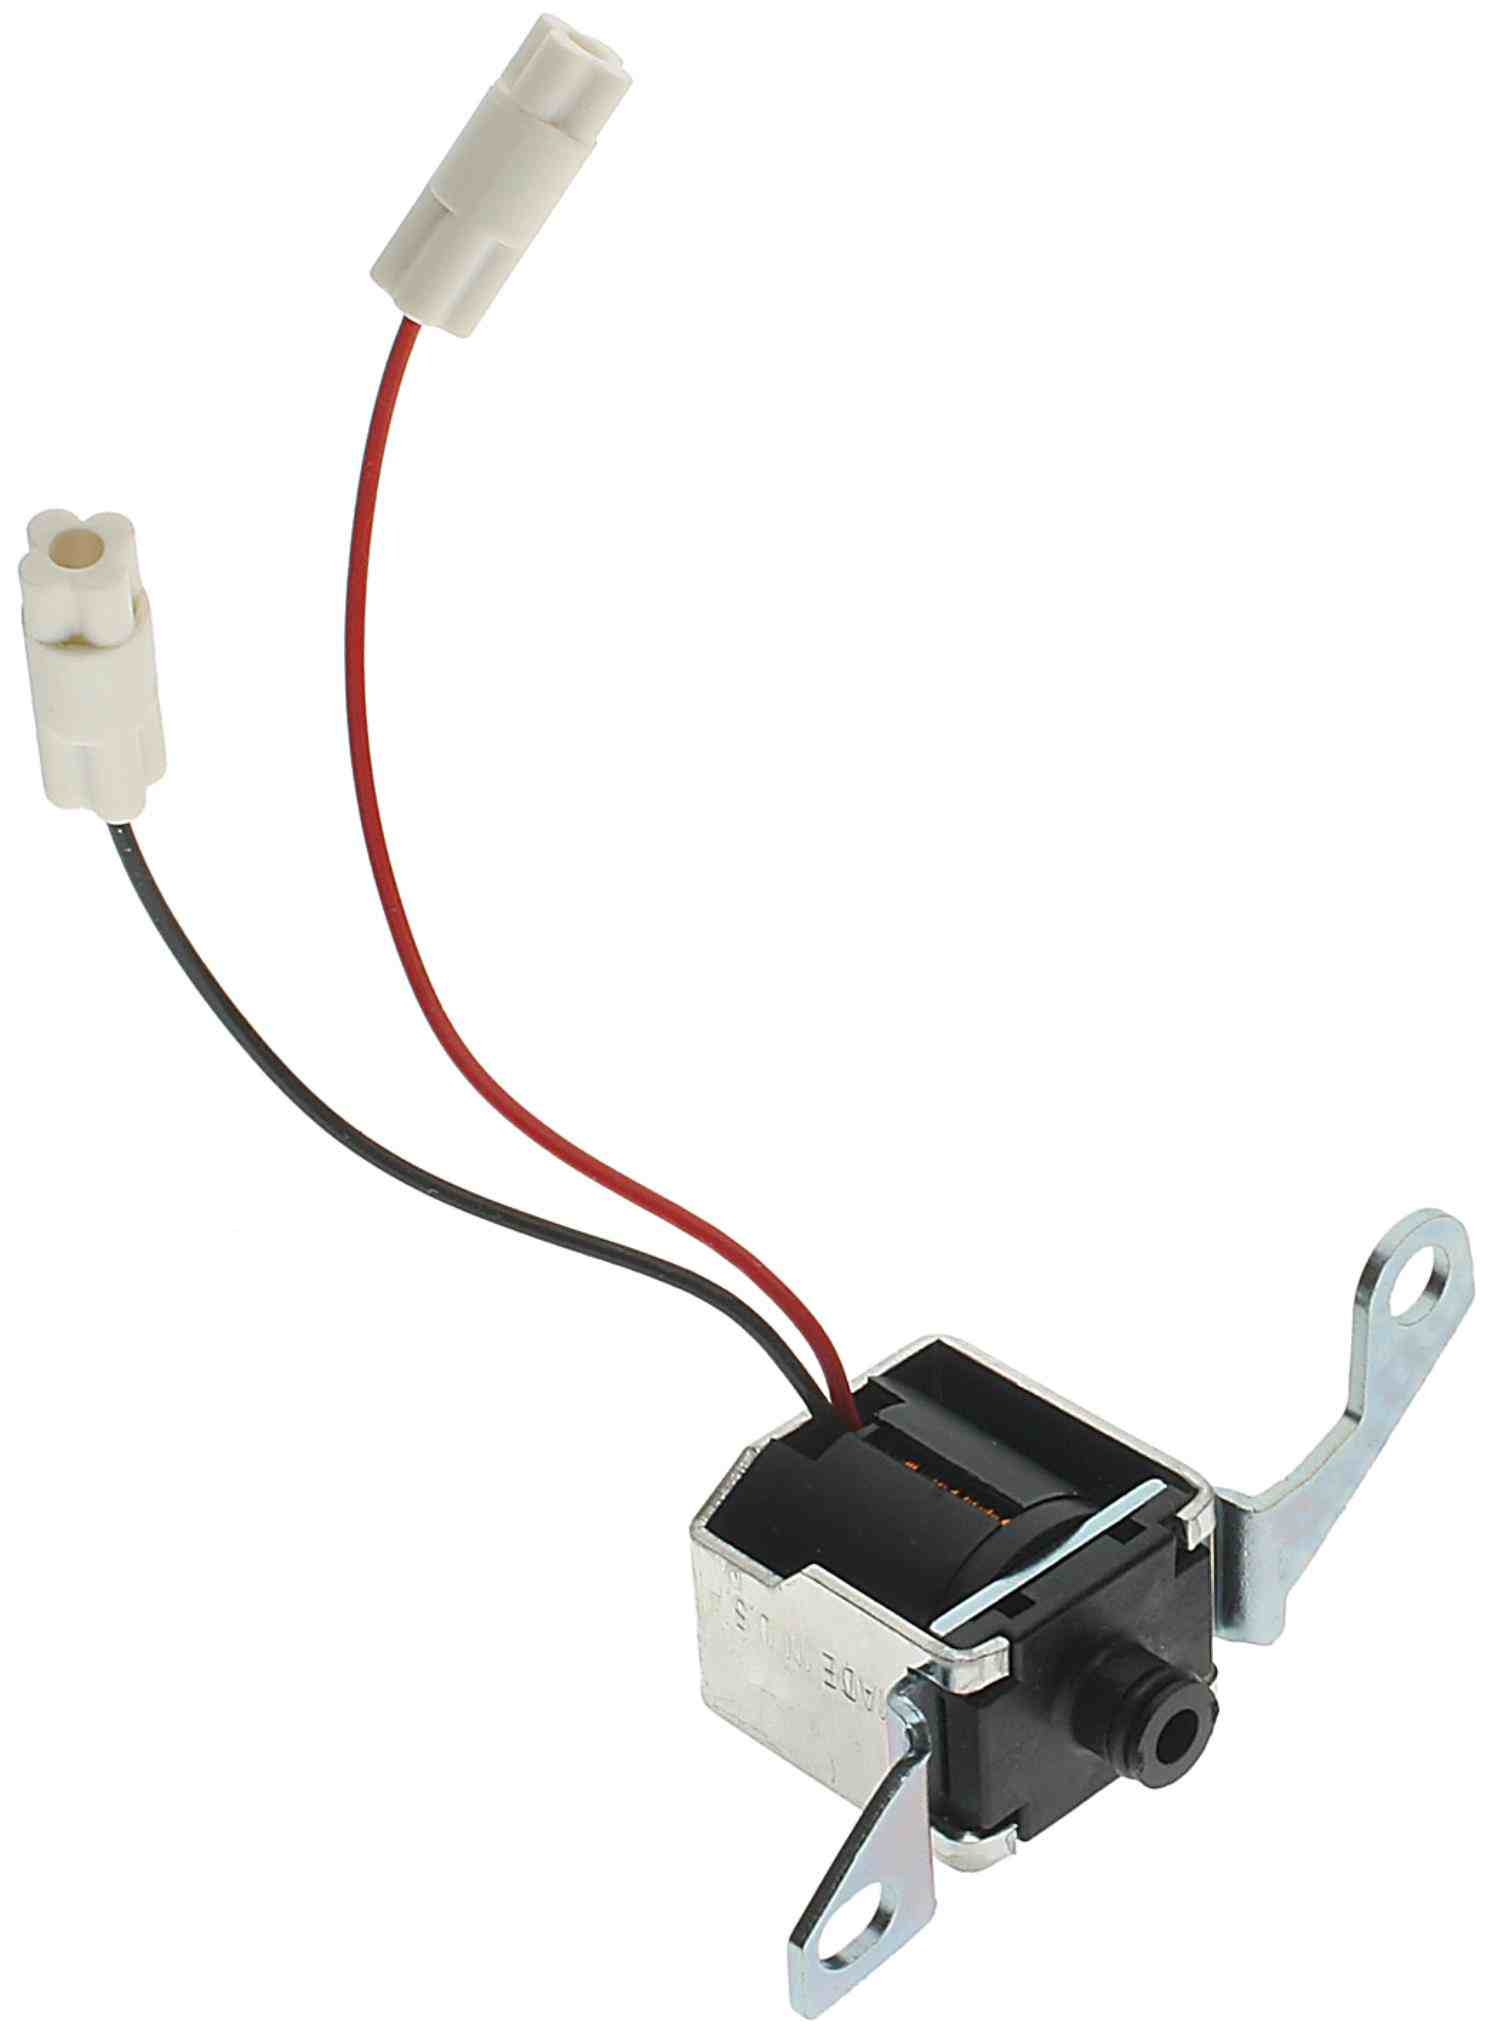 ACDELCO GOLD/PROFESSIONAL CANADA - Automatic Transmission Control Solenoid - DCH 214-1464